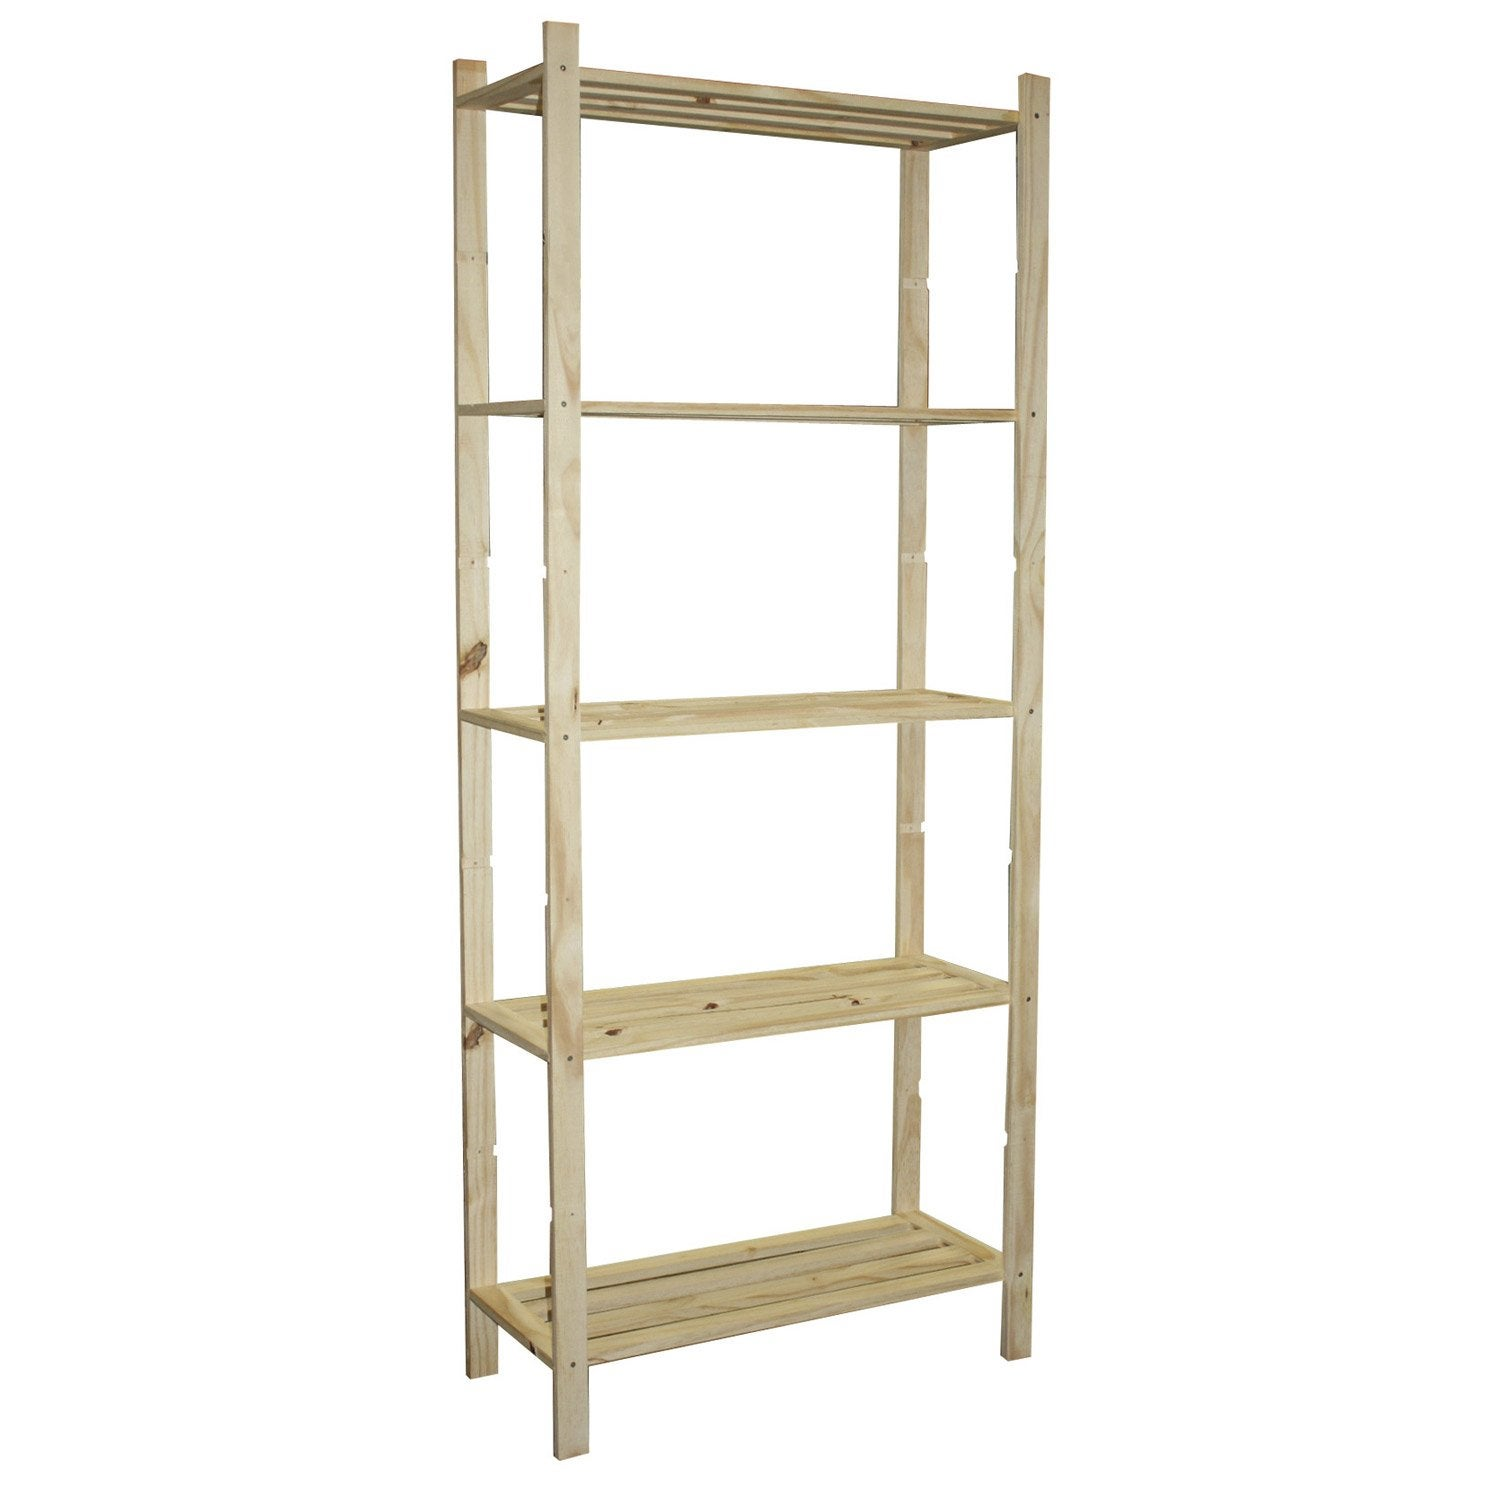 Etag re pin 5 tablettes x x cm leroy for Etagere de cuisine en bois